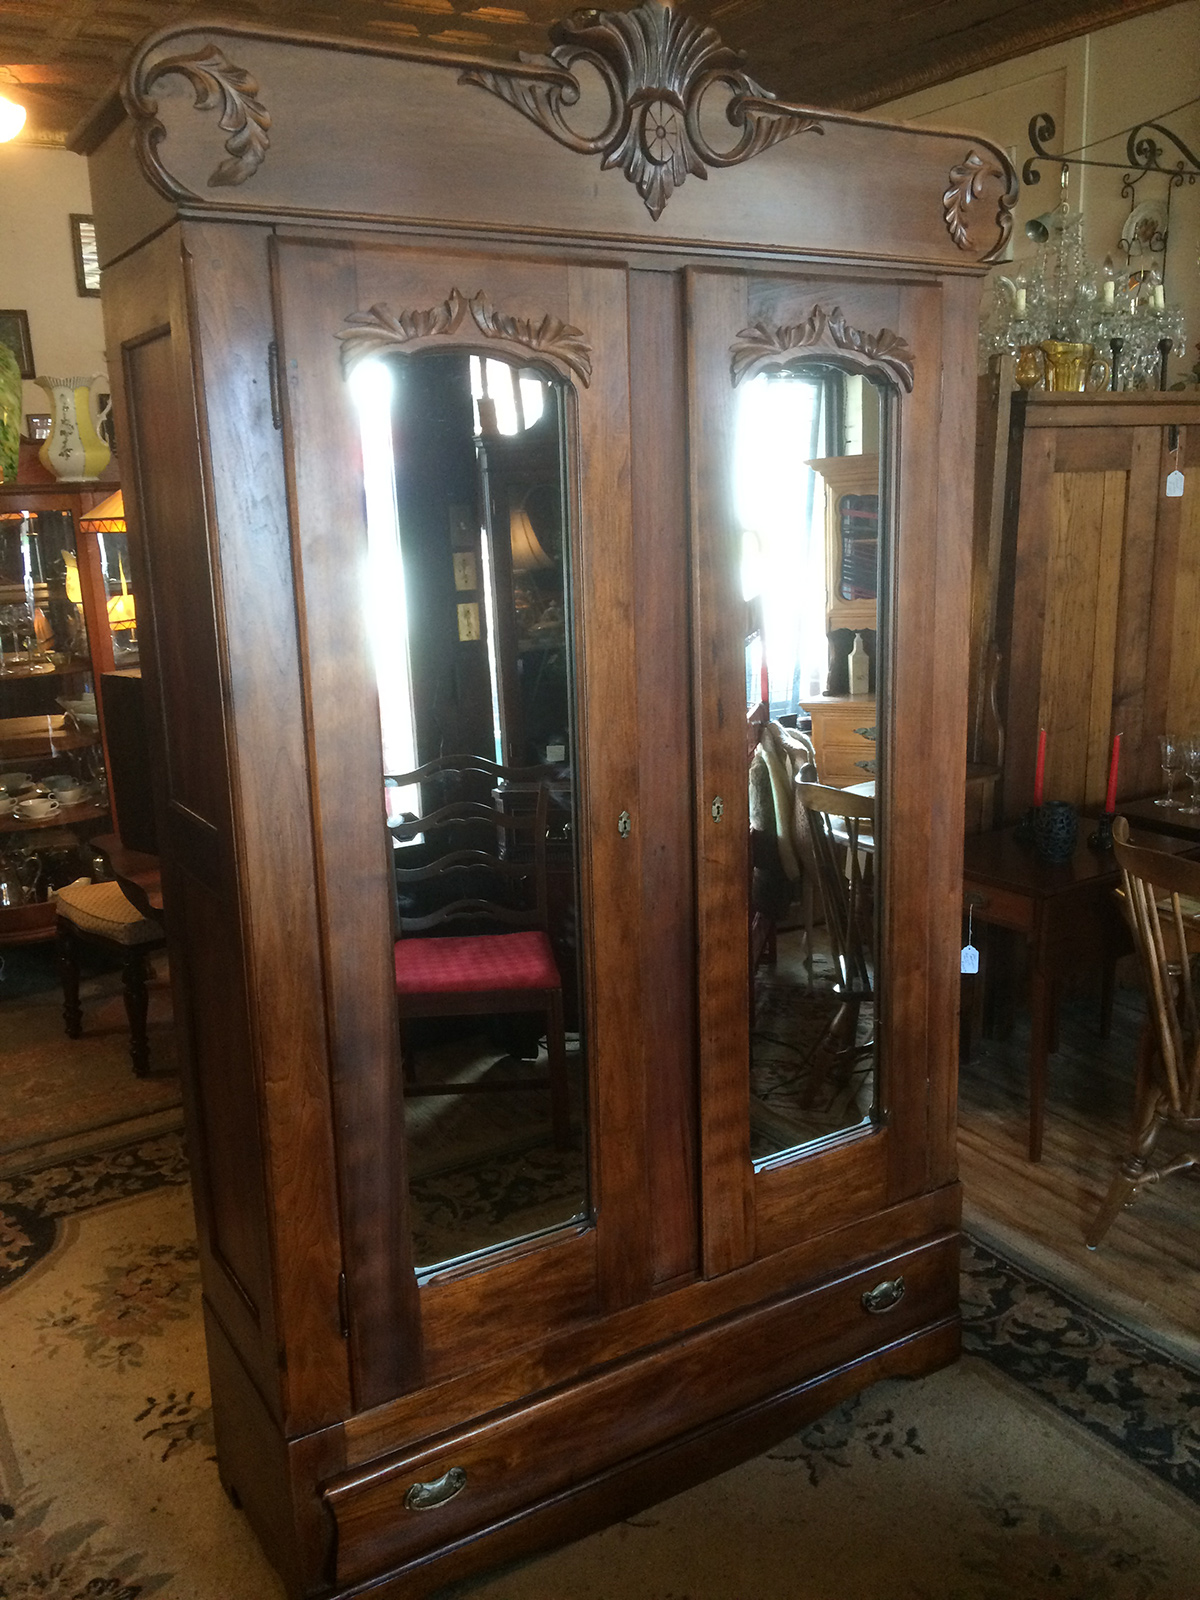 1880 1900 Collapsible Butternut Two Door Wardrobe Sold